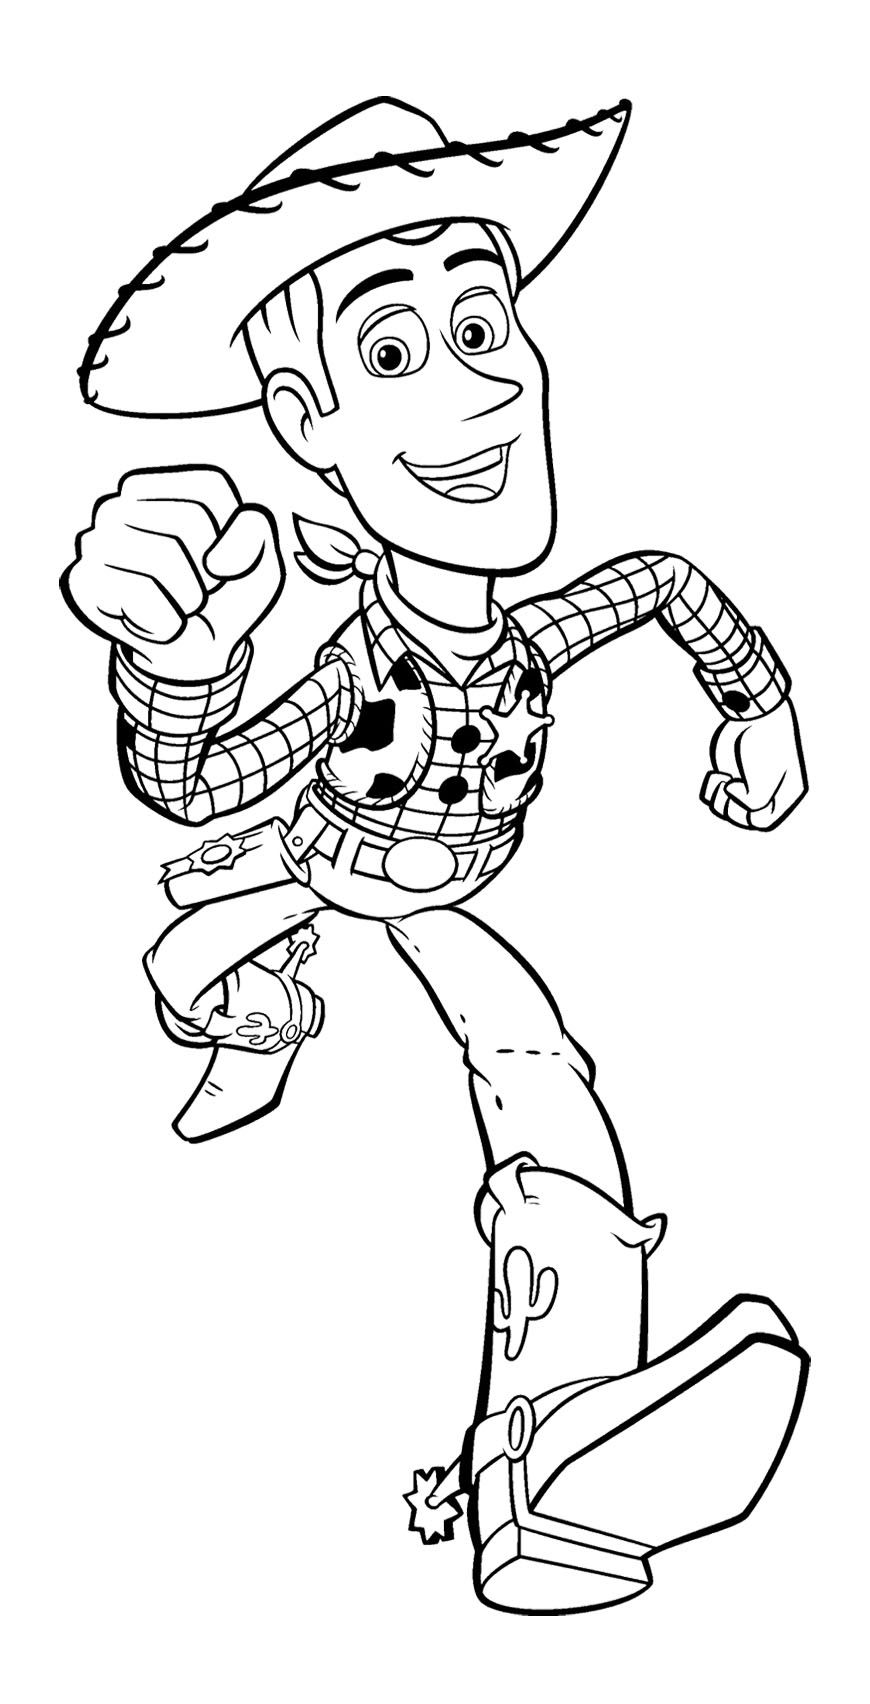 Toy Story Woody Runs Fast Coloring Page For Kids Kids Coloring